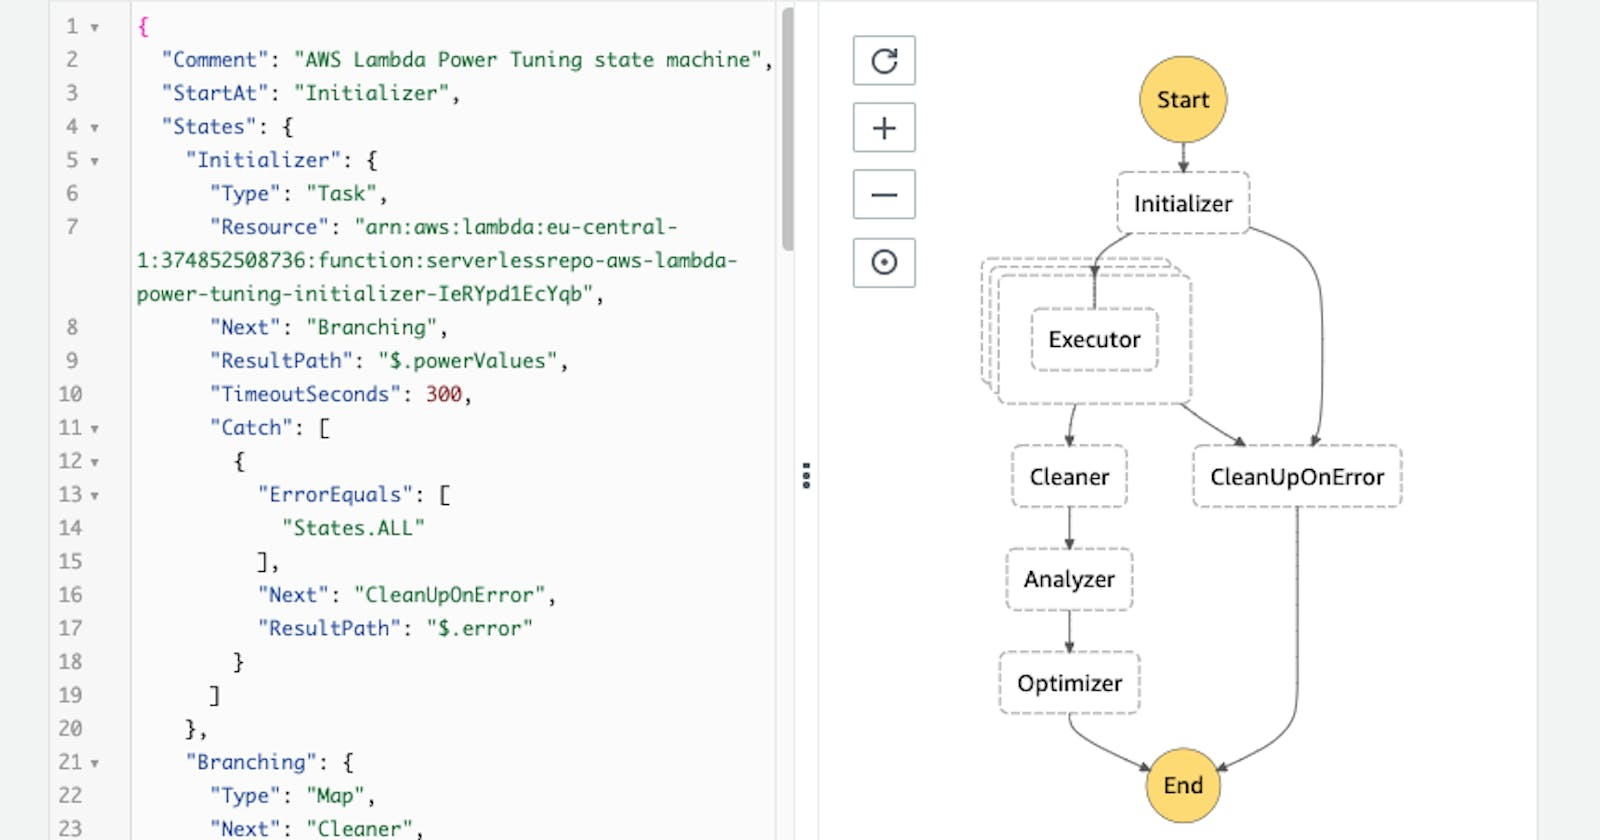 How to Optimize AWS Lambda Performance with Power Tuning